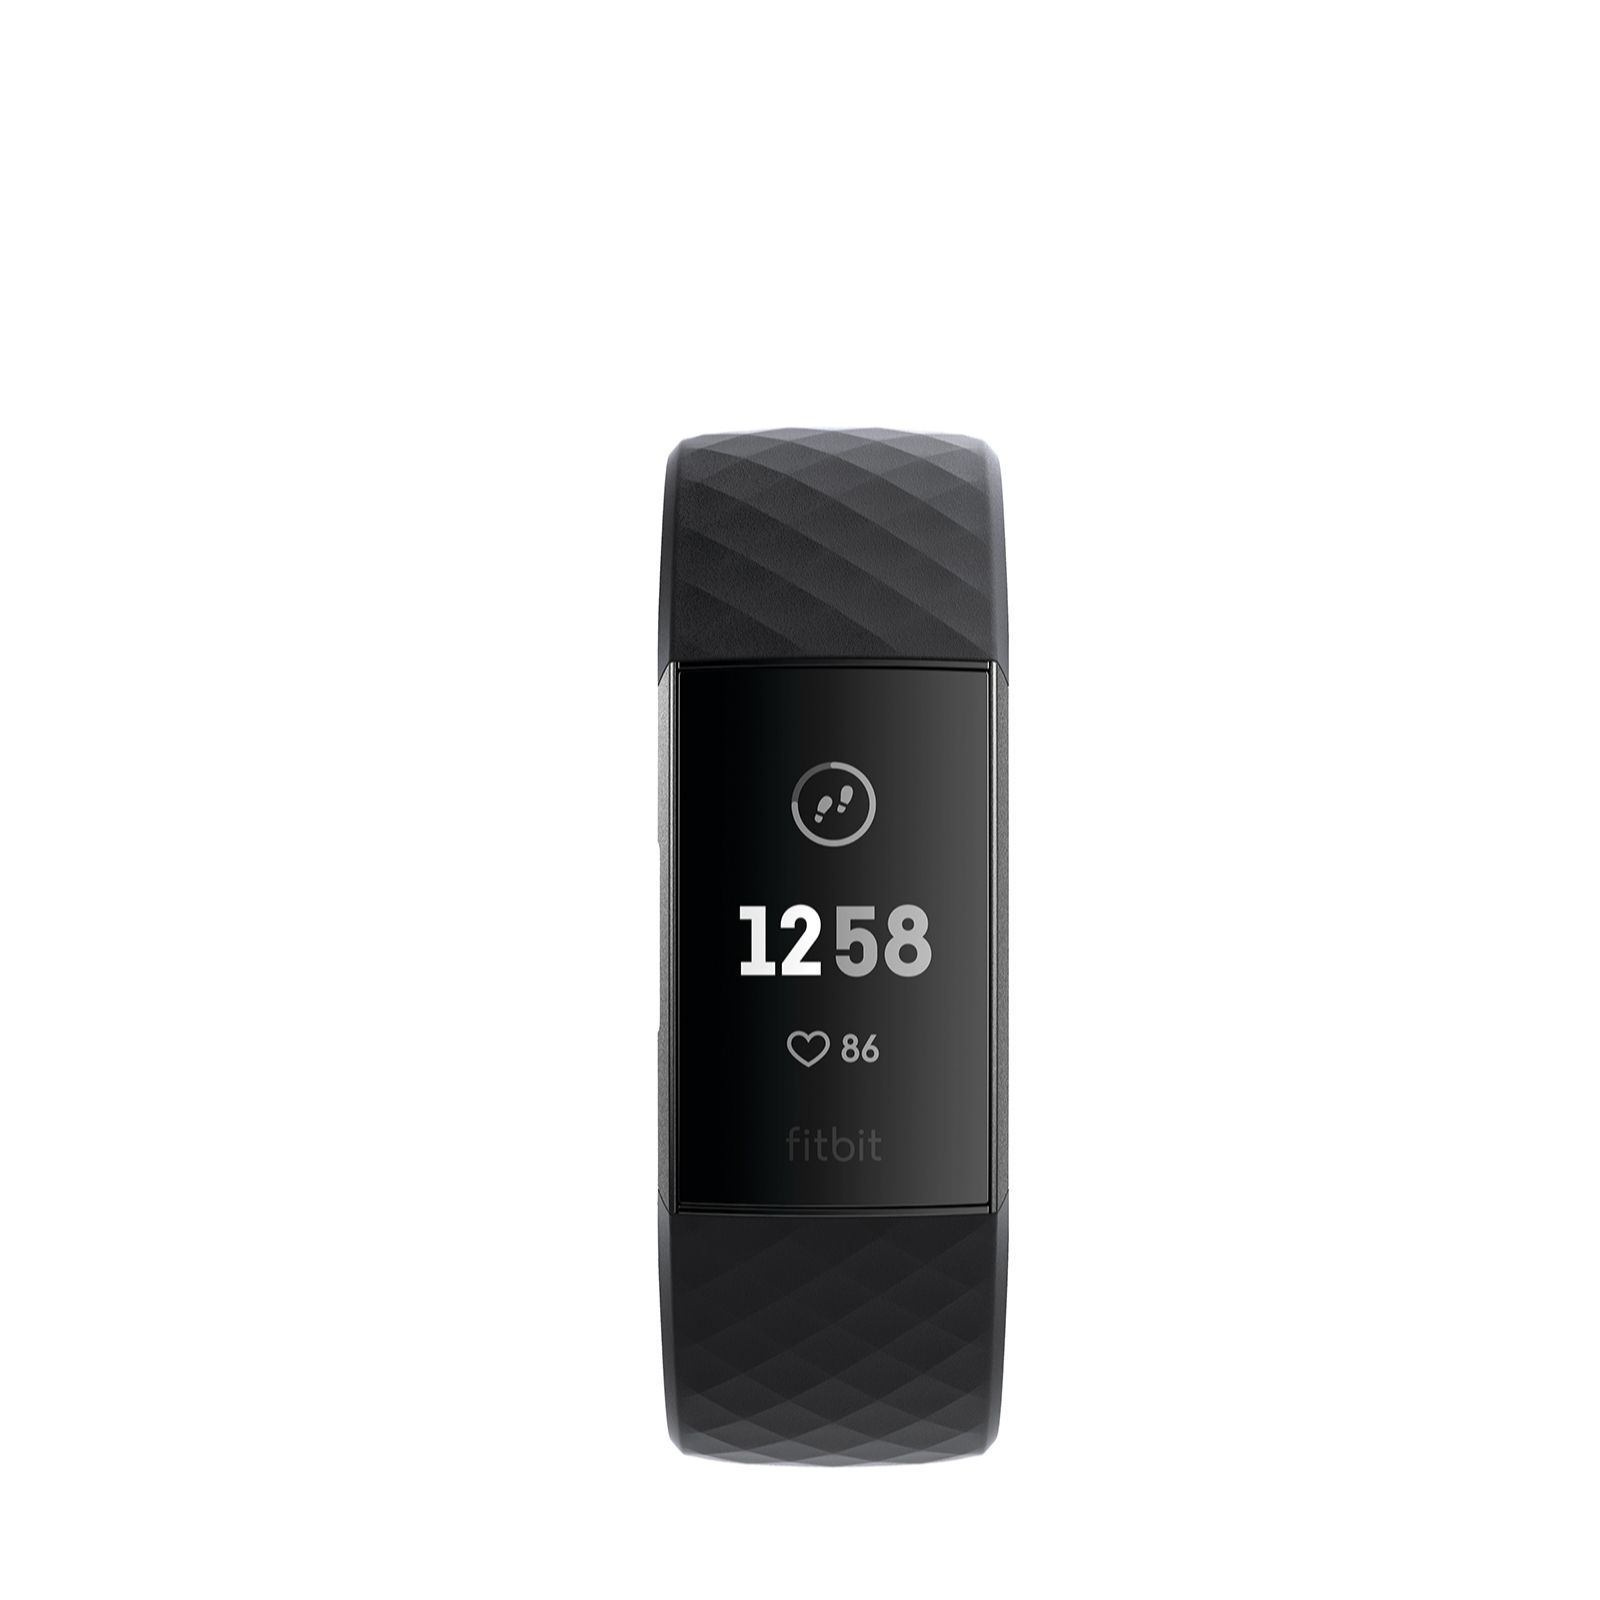 Fitbit Charge 3 Activity & Sleep Tracker with Heart Rate Monitor - QVC UK